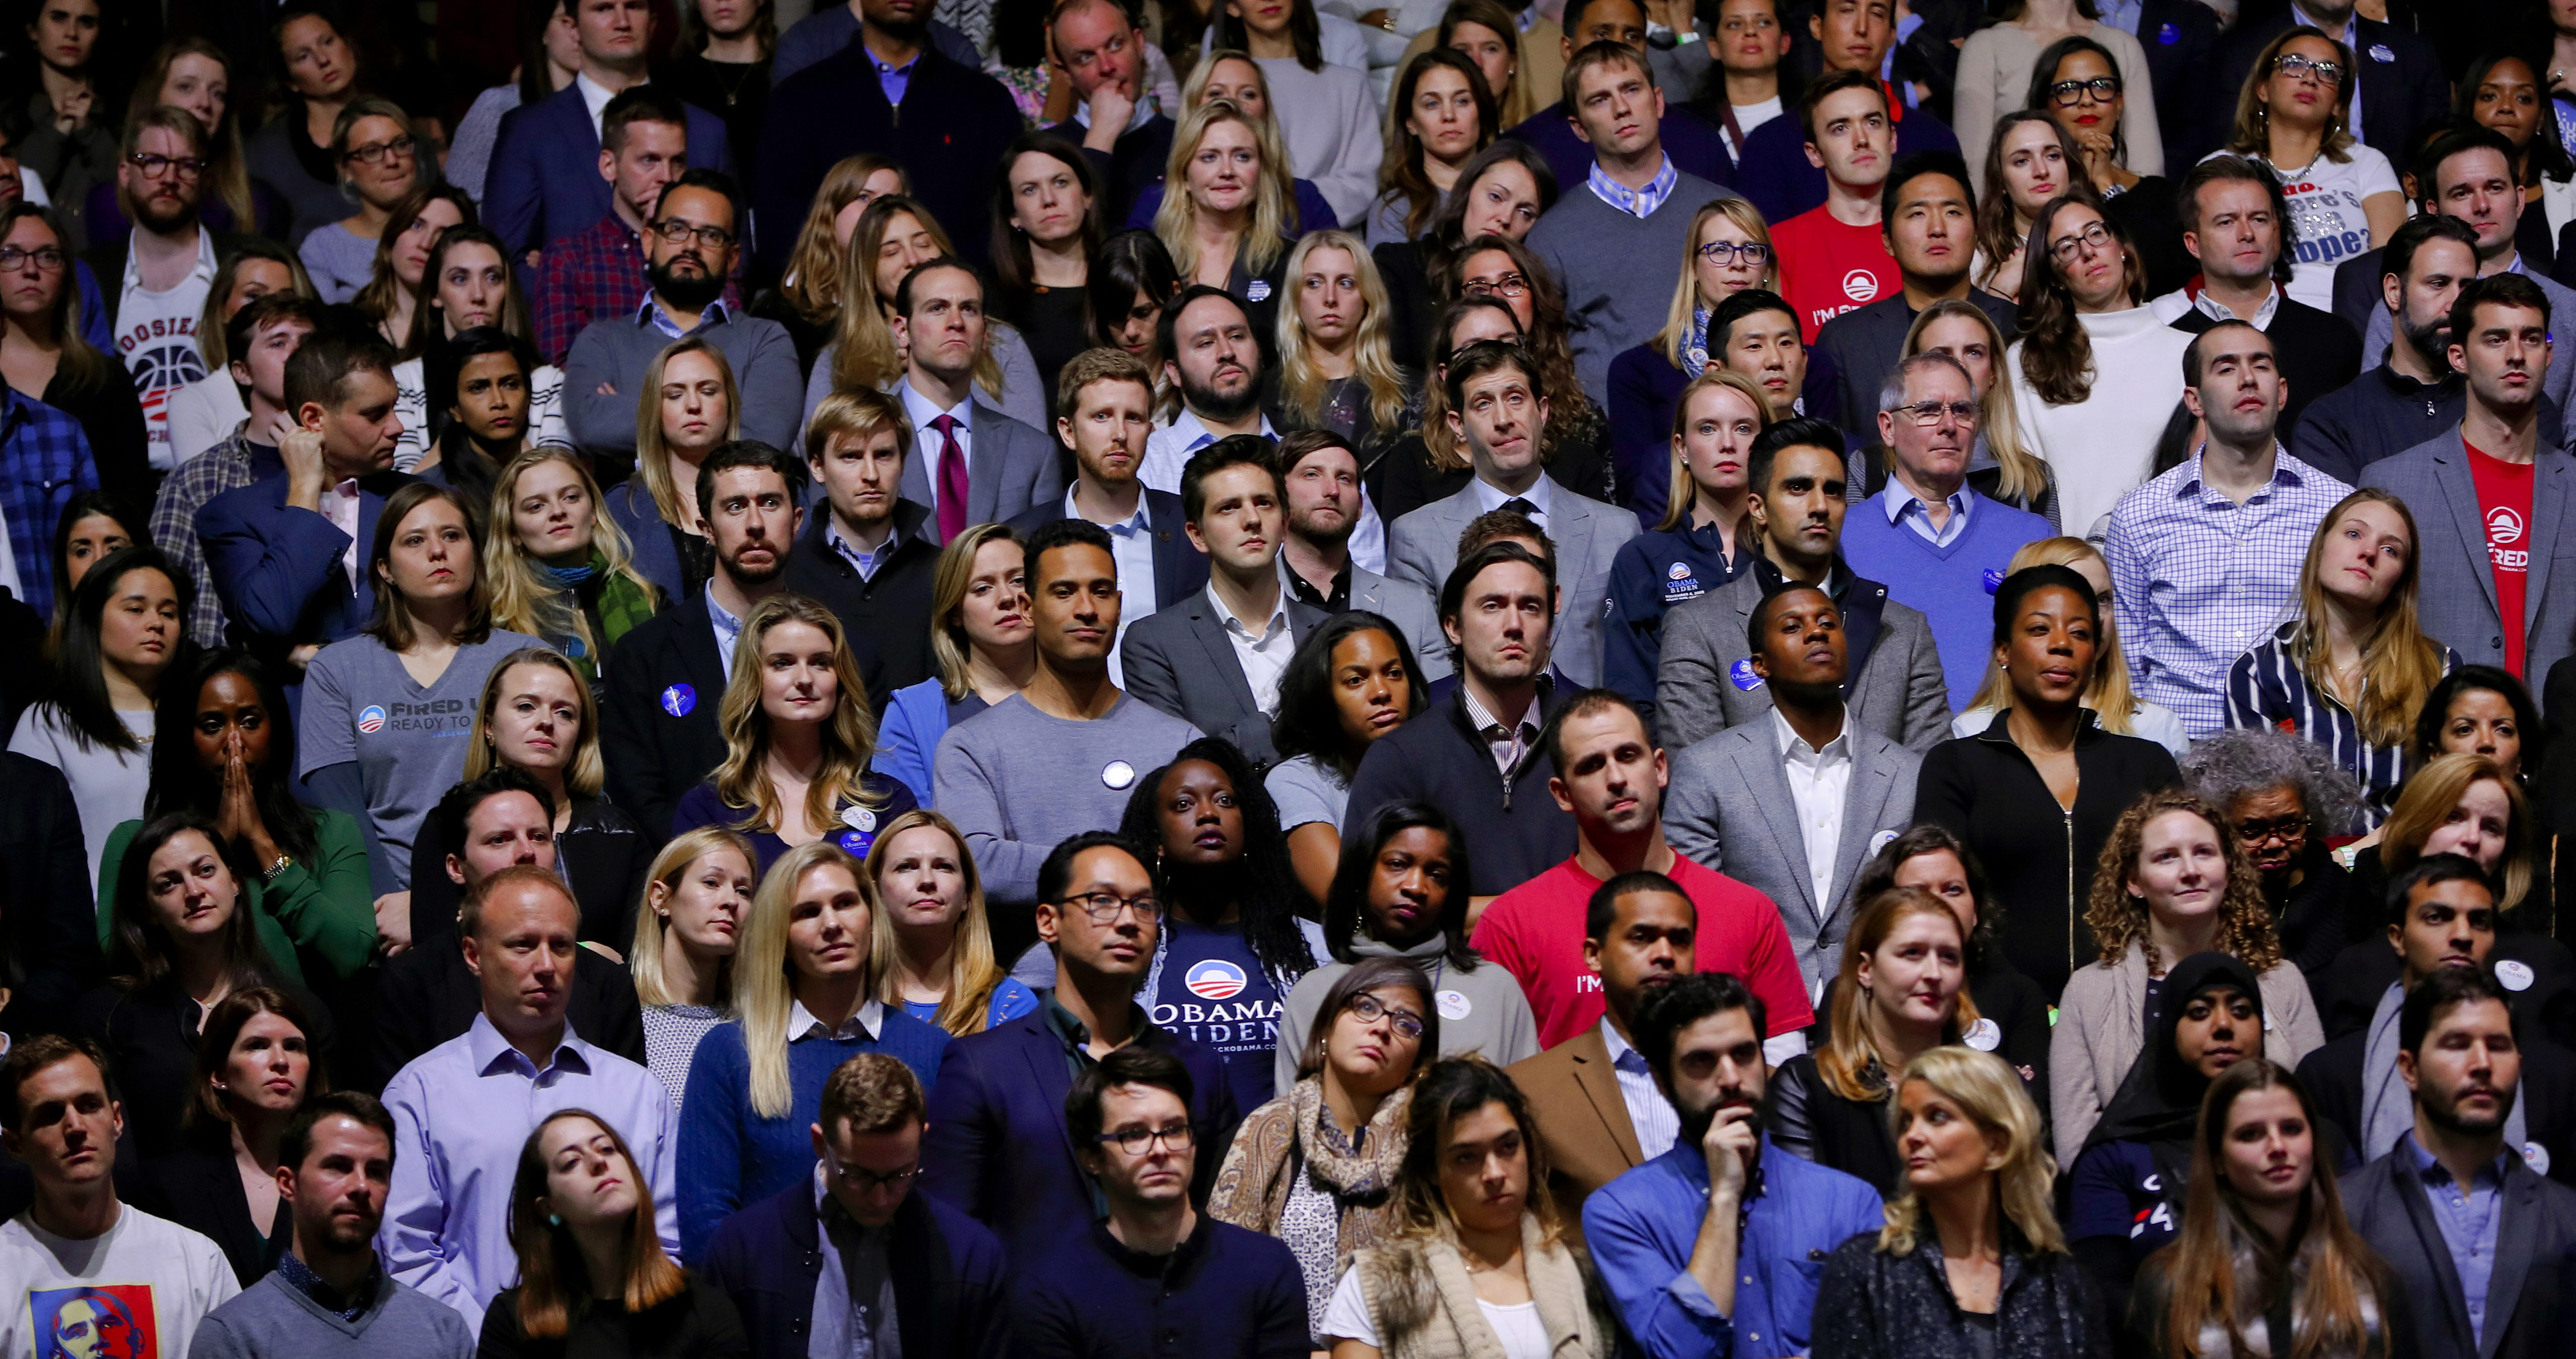 Members of the audience listens to President Barack Obama's farewell address at McCormick Place in Chicago, Tuesday, Jan. 10, 2017. (AP Photo/Pablo Martinez Monsivais)